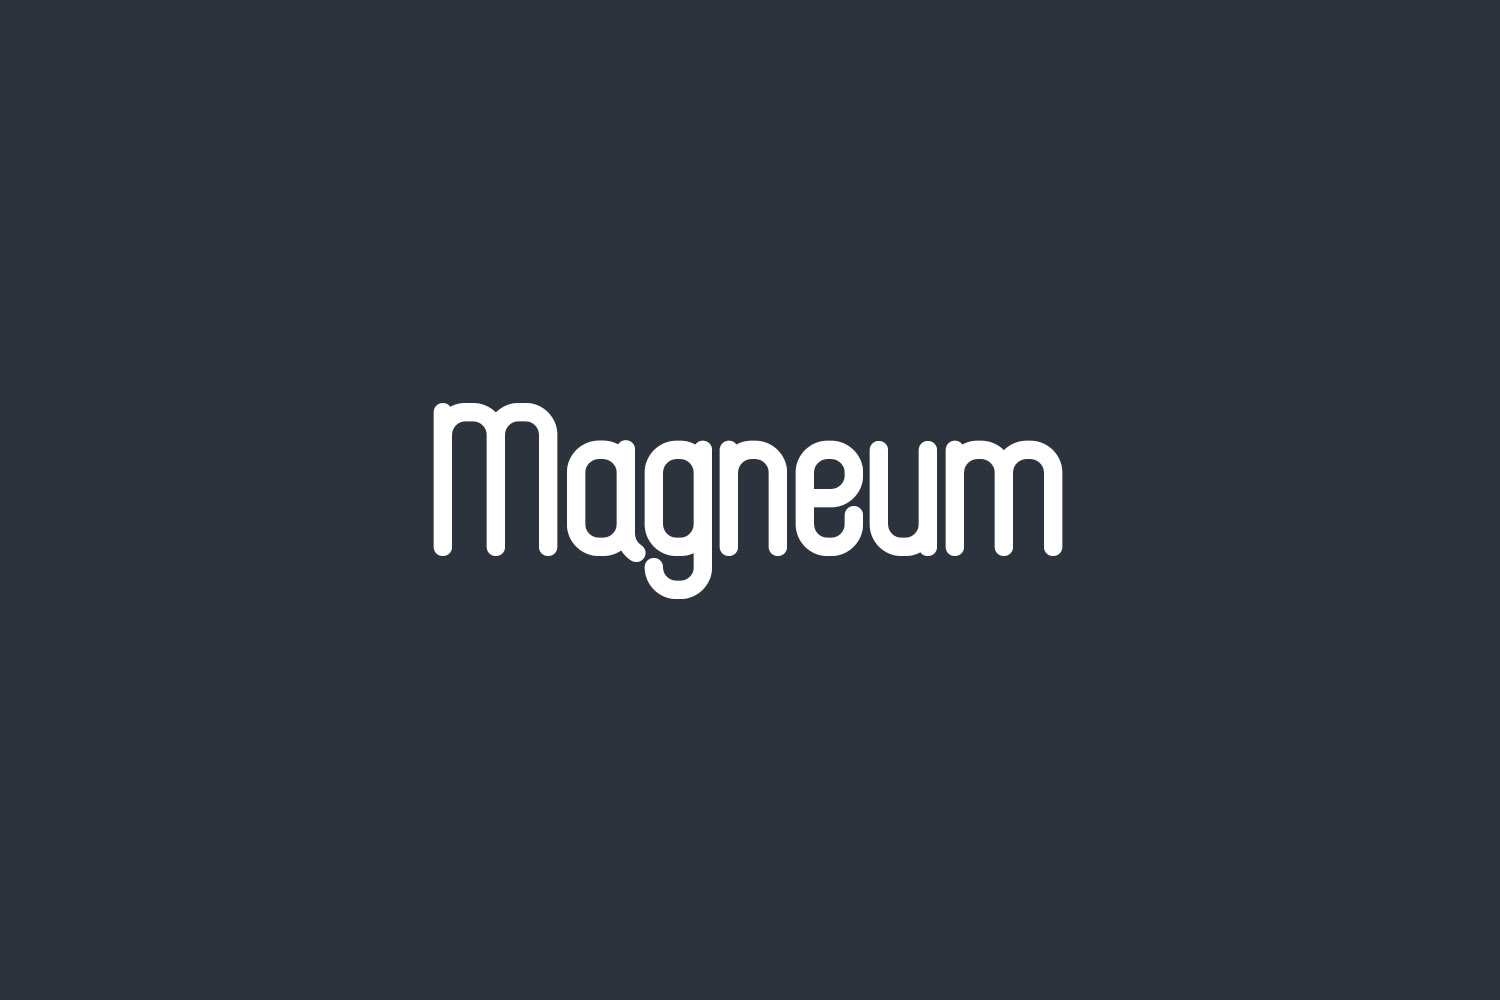 Magneum Free Font